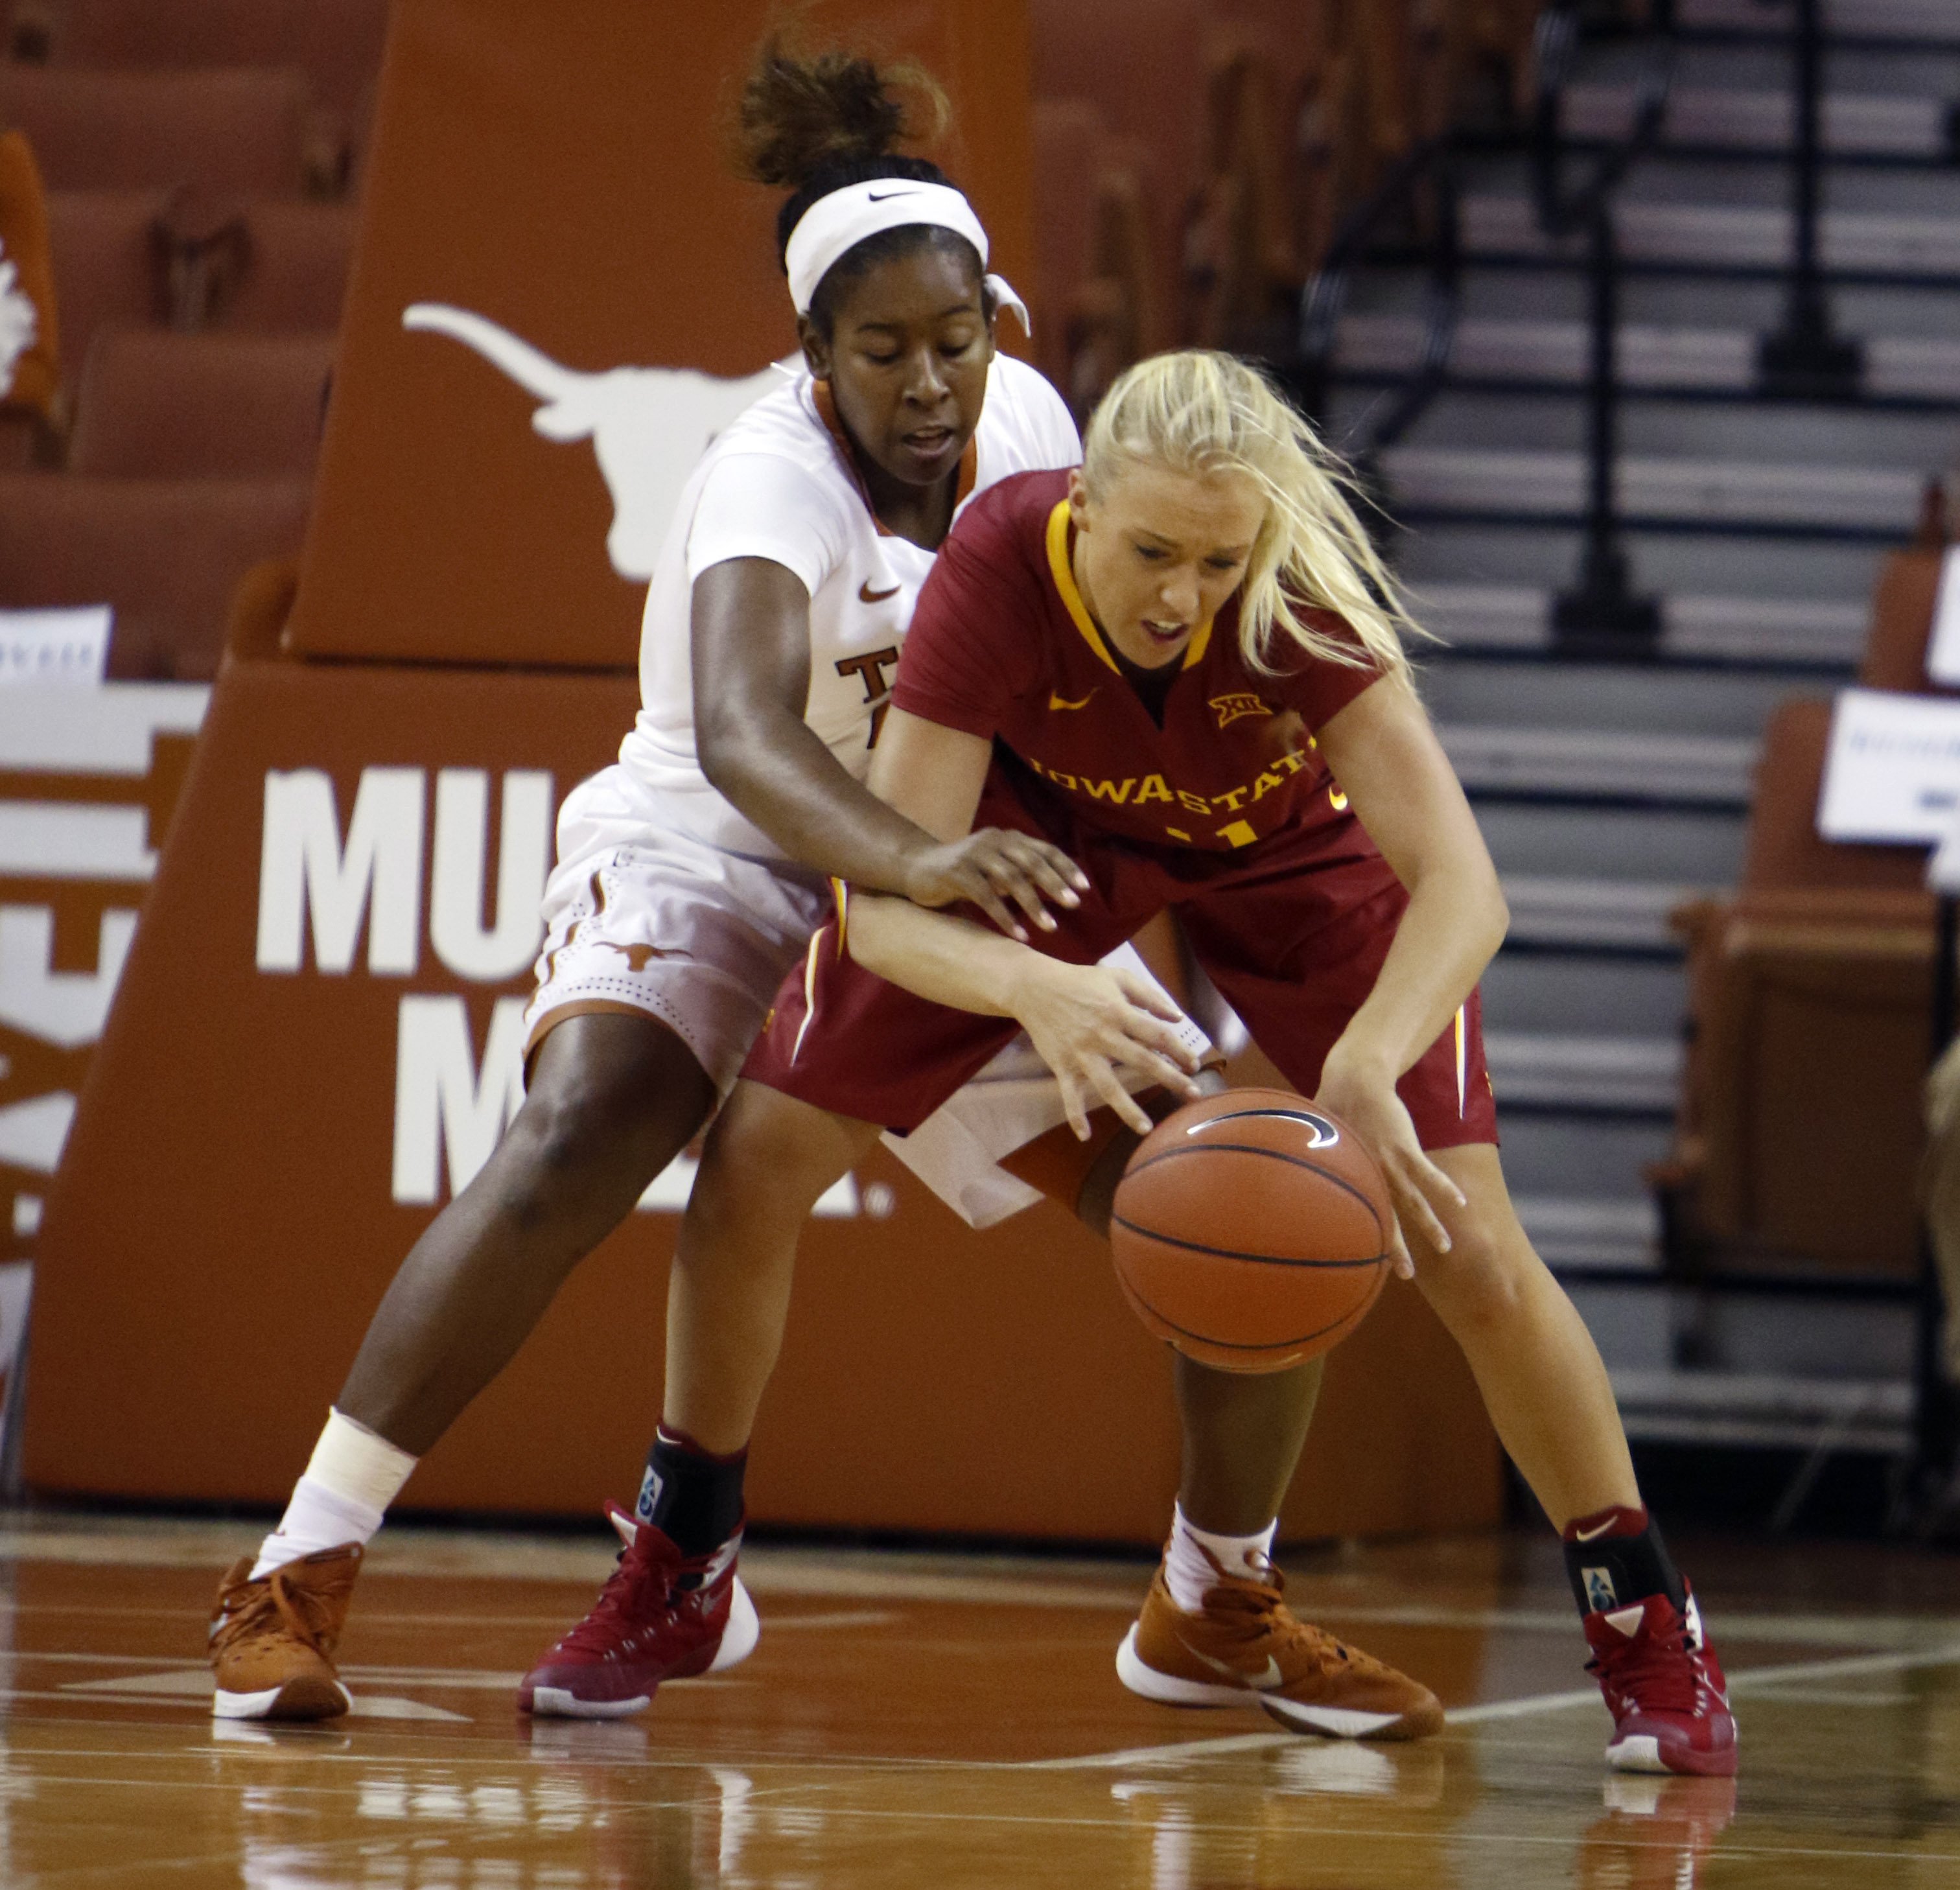 Iowa State guard Jadda Buckley, front, tries to control the ball against Texas guard Lashann Higgs during the first half of an NCAA college basketball game Wednesday, Jan. 6, 2016, in Austin, Texas. (AP Photo/Michael Thomas)